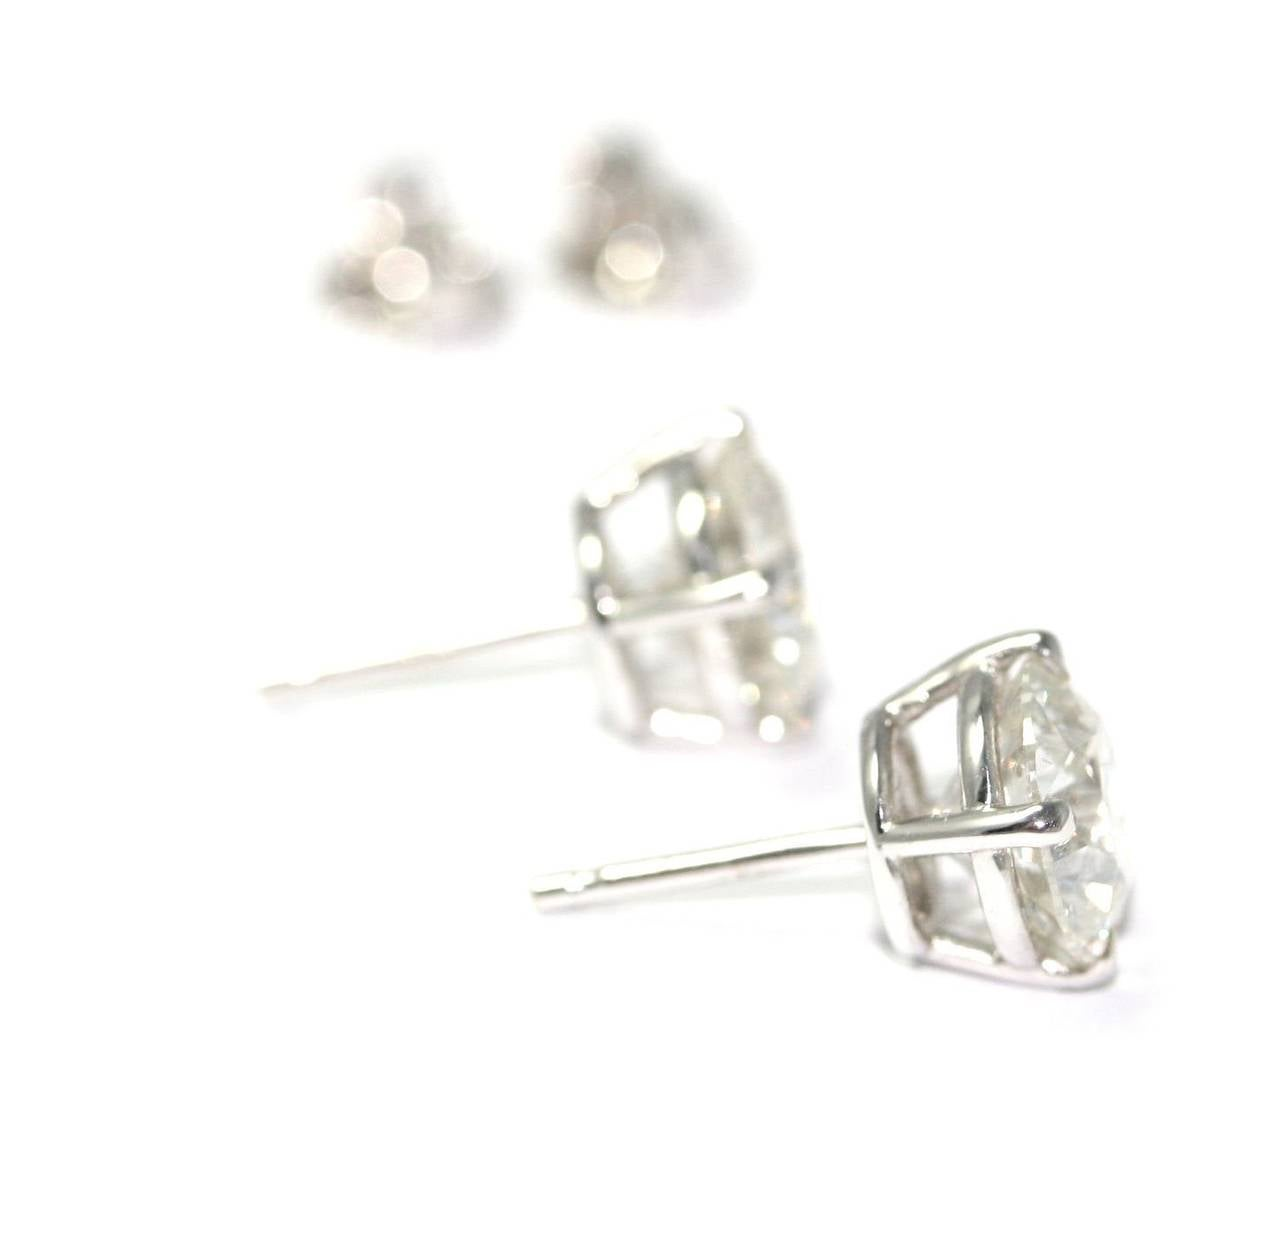 Ear studs in white gold set with brilliant cut diamonds 2.51 carats color H purity SI1 and 2.65 carats color H purity SI2, with two HRD Certificates (3,8grs)